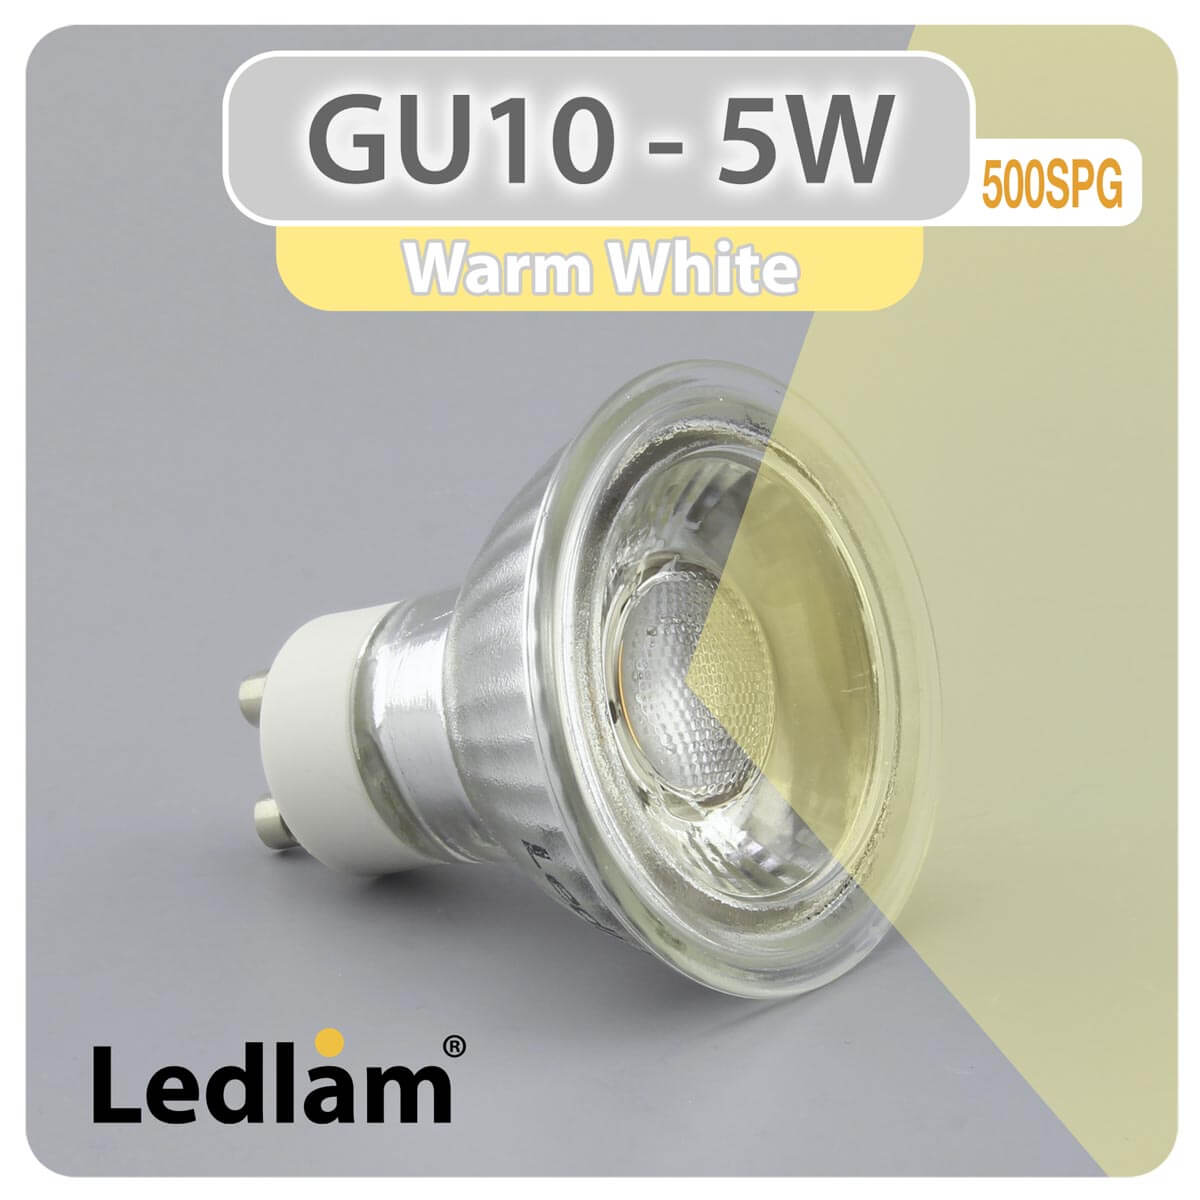 Led Spot Gu10 Gu10 Led Spot Light 5w 500spg